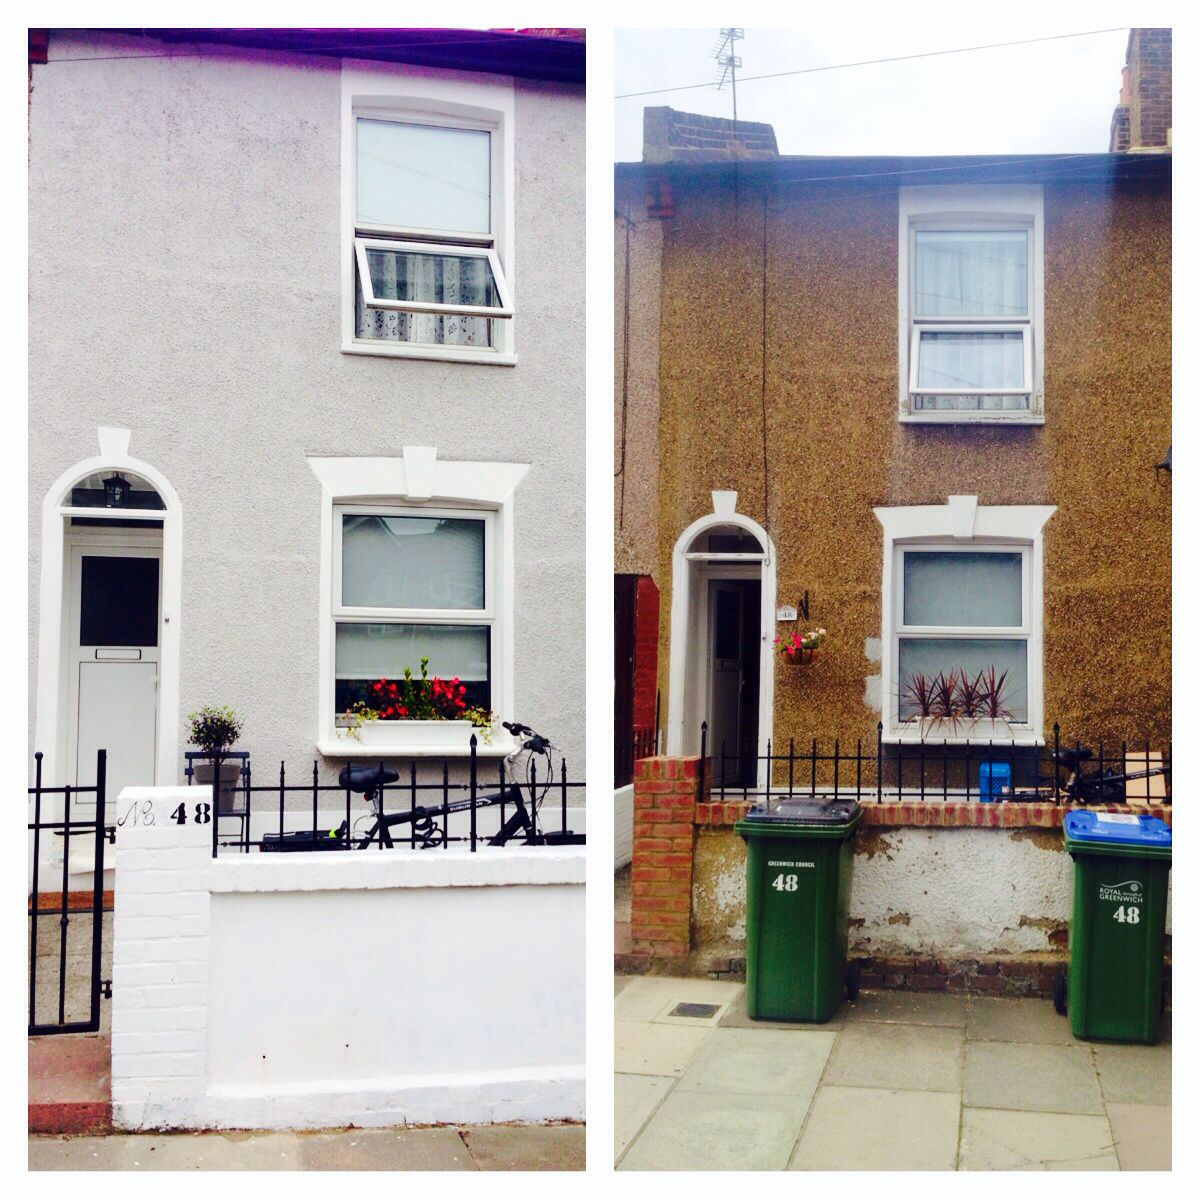 Before and after masonry paint farrow and ball cornforth - Farrow and ball exterior masonry paint ideas ...